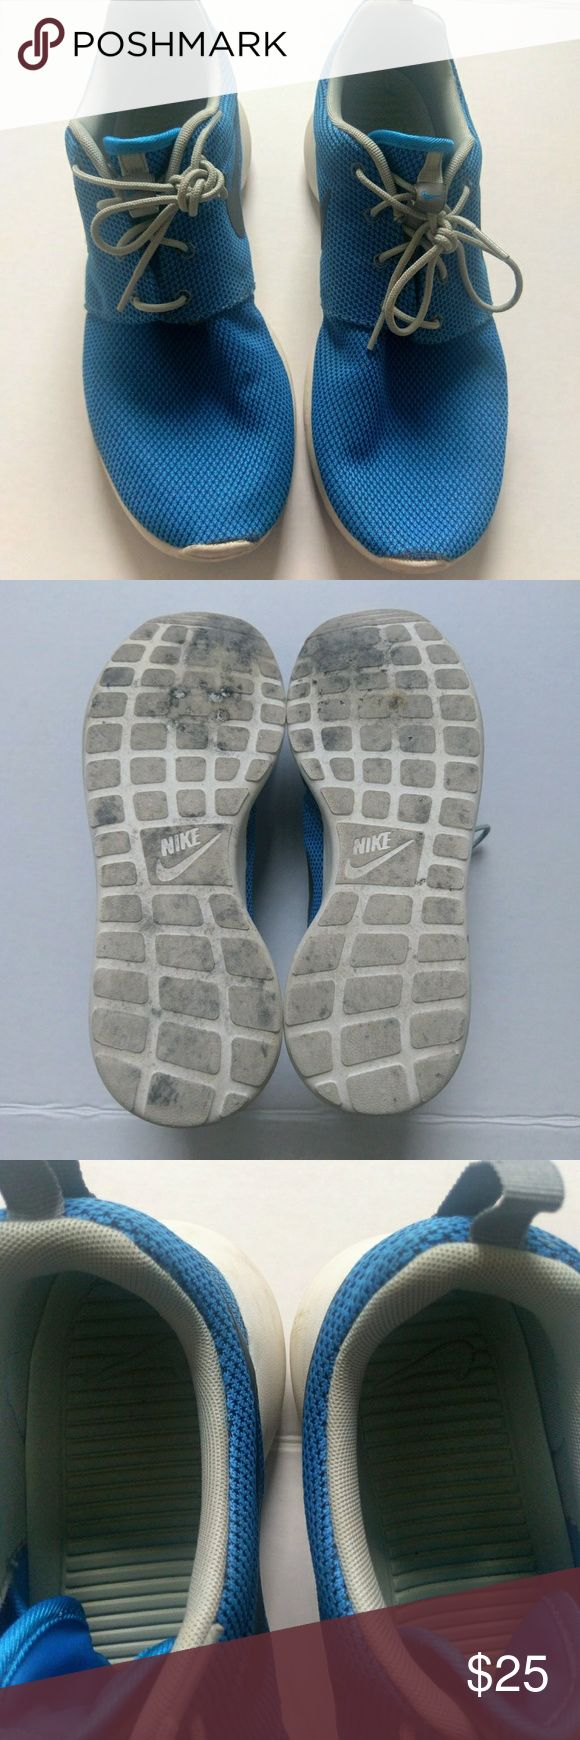 Nike men's Roshe sneaker size 12 Only worn a few times. Please see pics for sign of wear. Mainly small scuffs some wear on the sole. Nike Shoes Sneakers